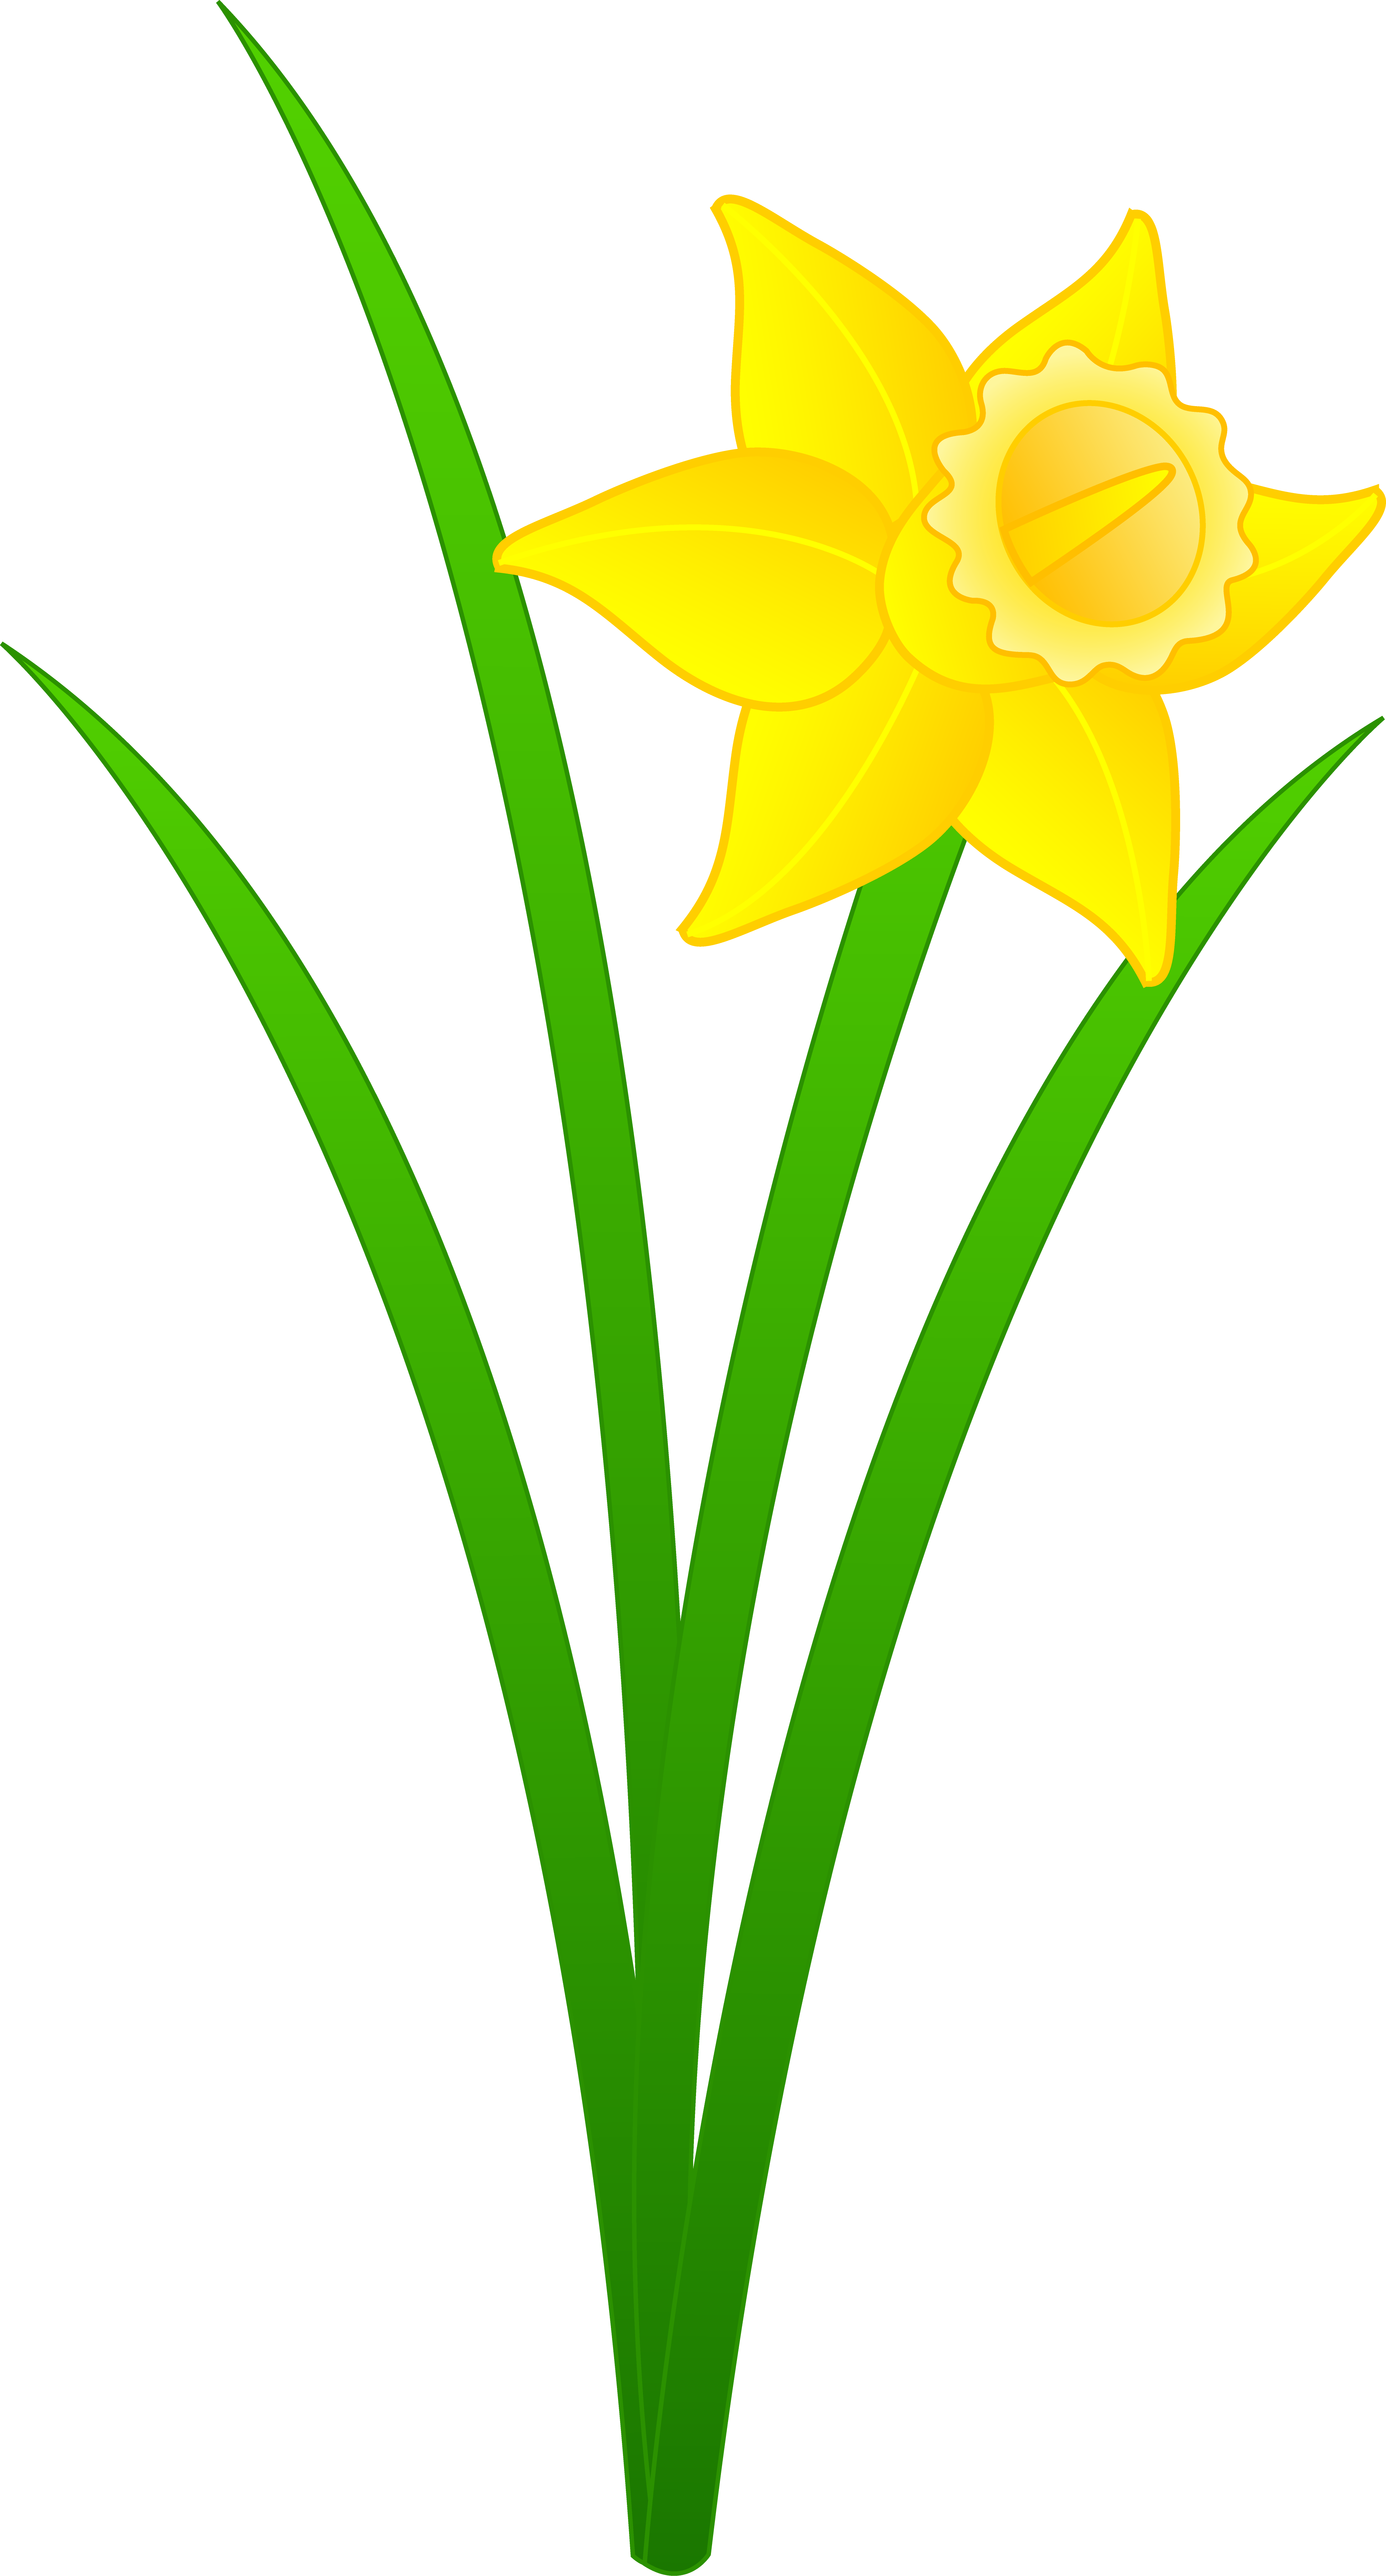 Flower panda free images. Daffodil clipart yellow daffodil clipart black and white